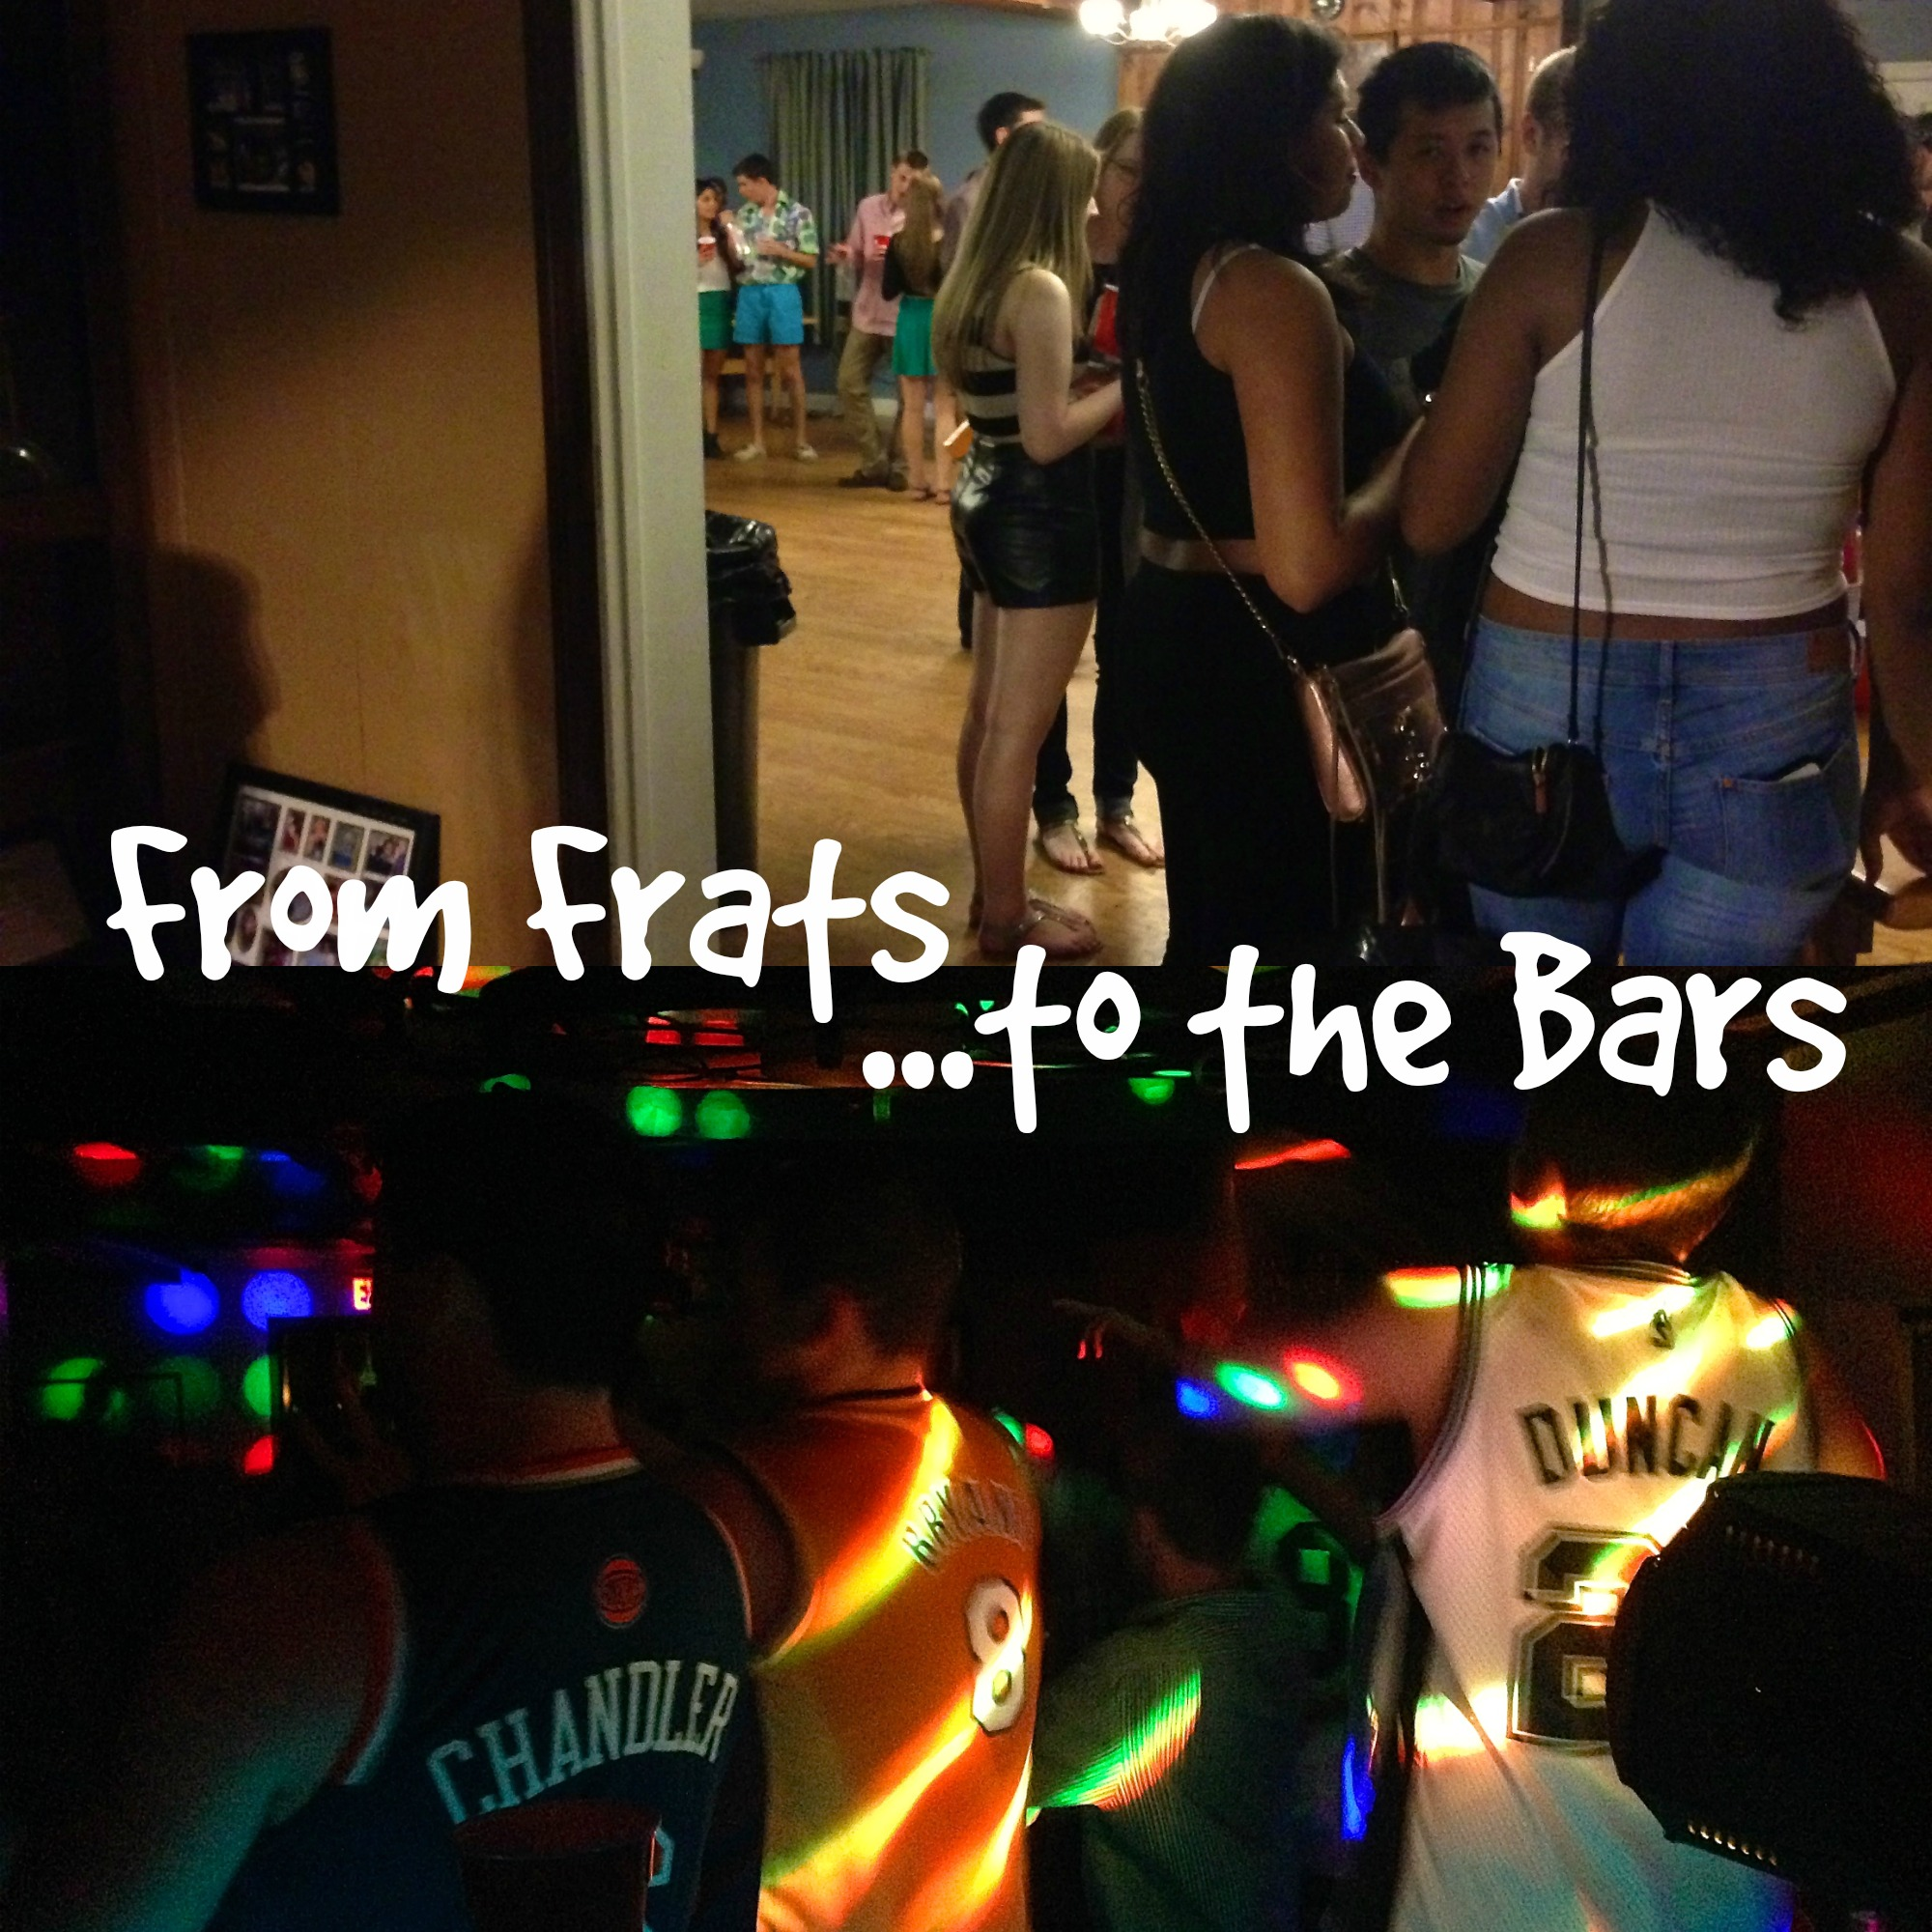 From the Filthy Frats to the Best Bars: A Reflection on Four Years of Penn State Parties